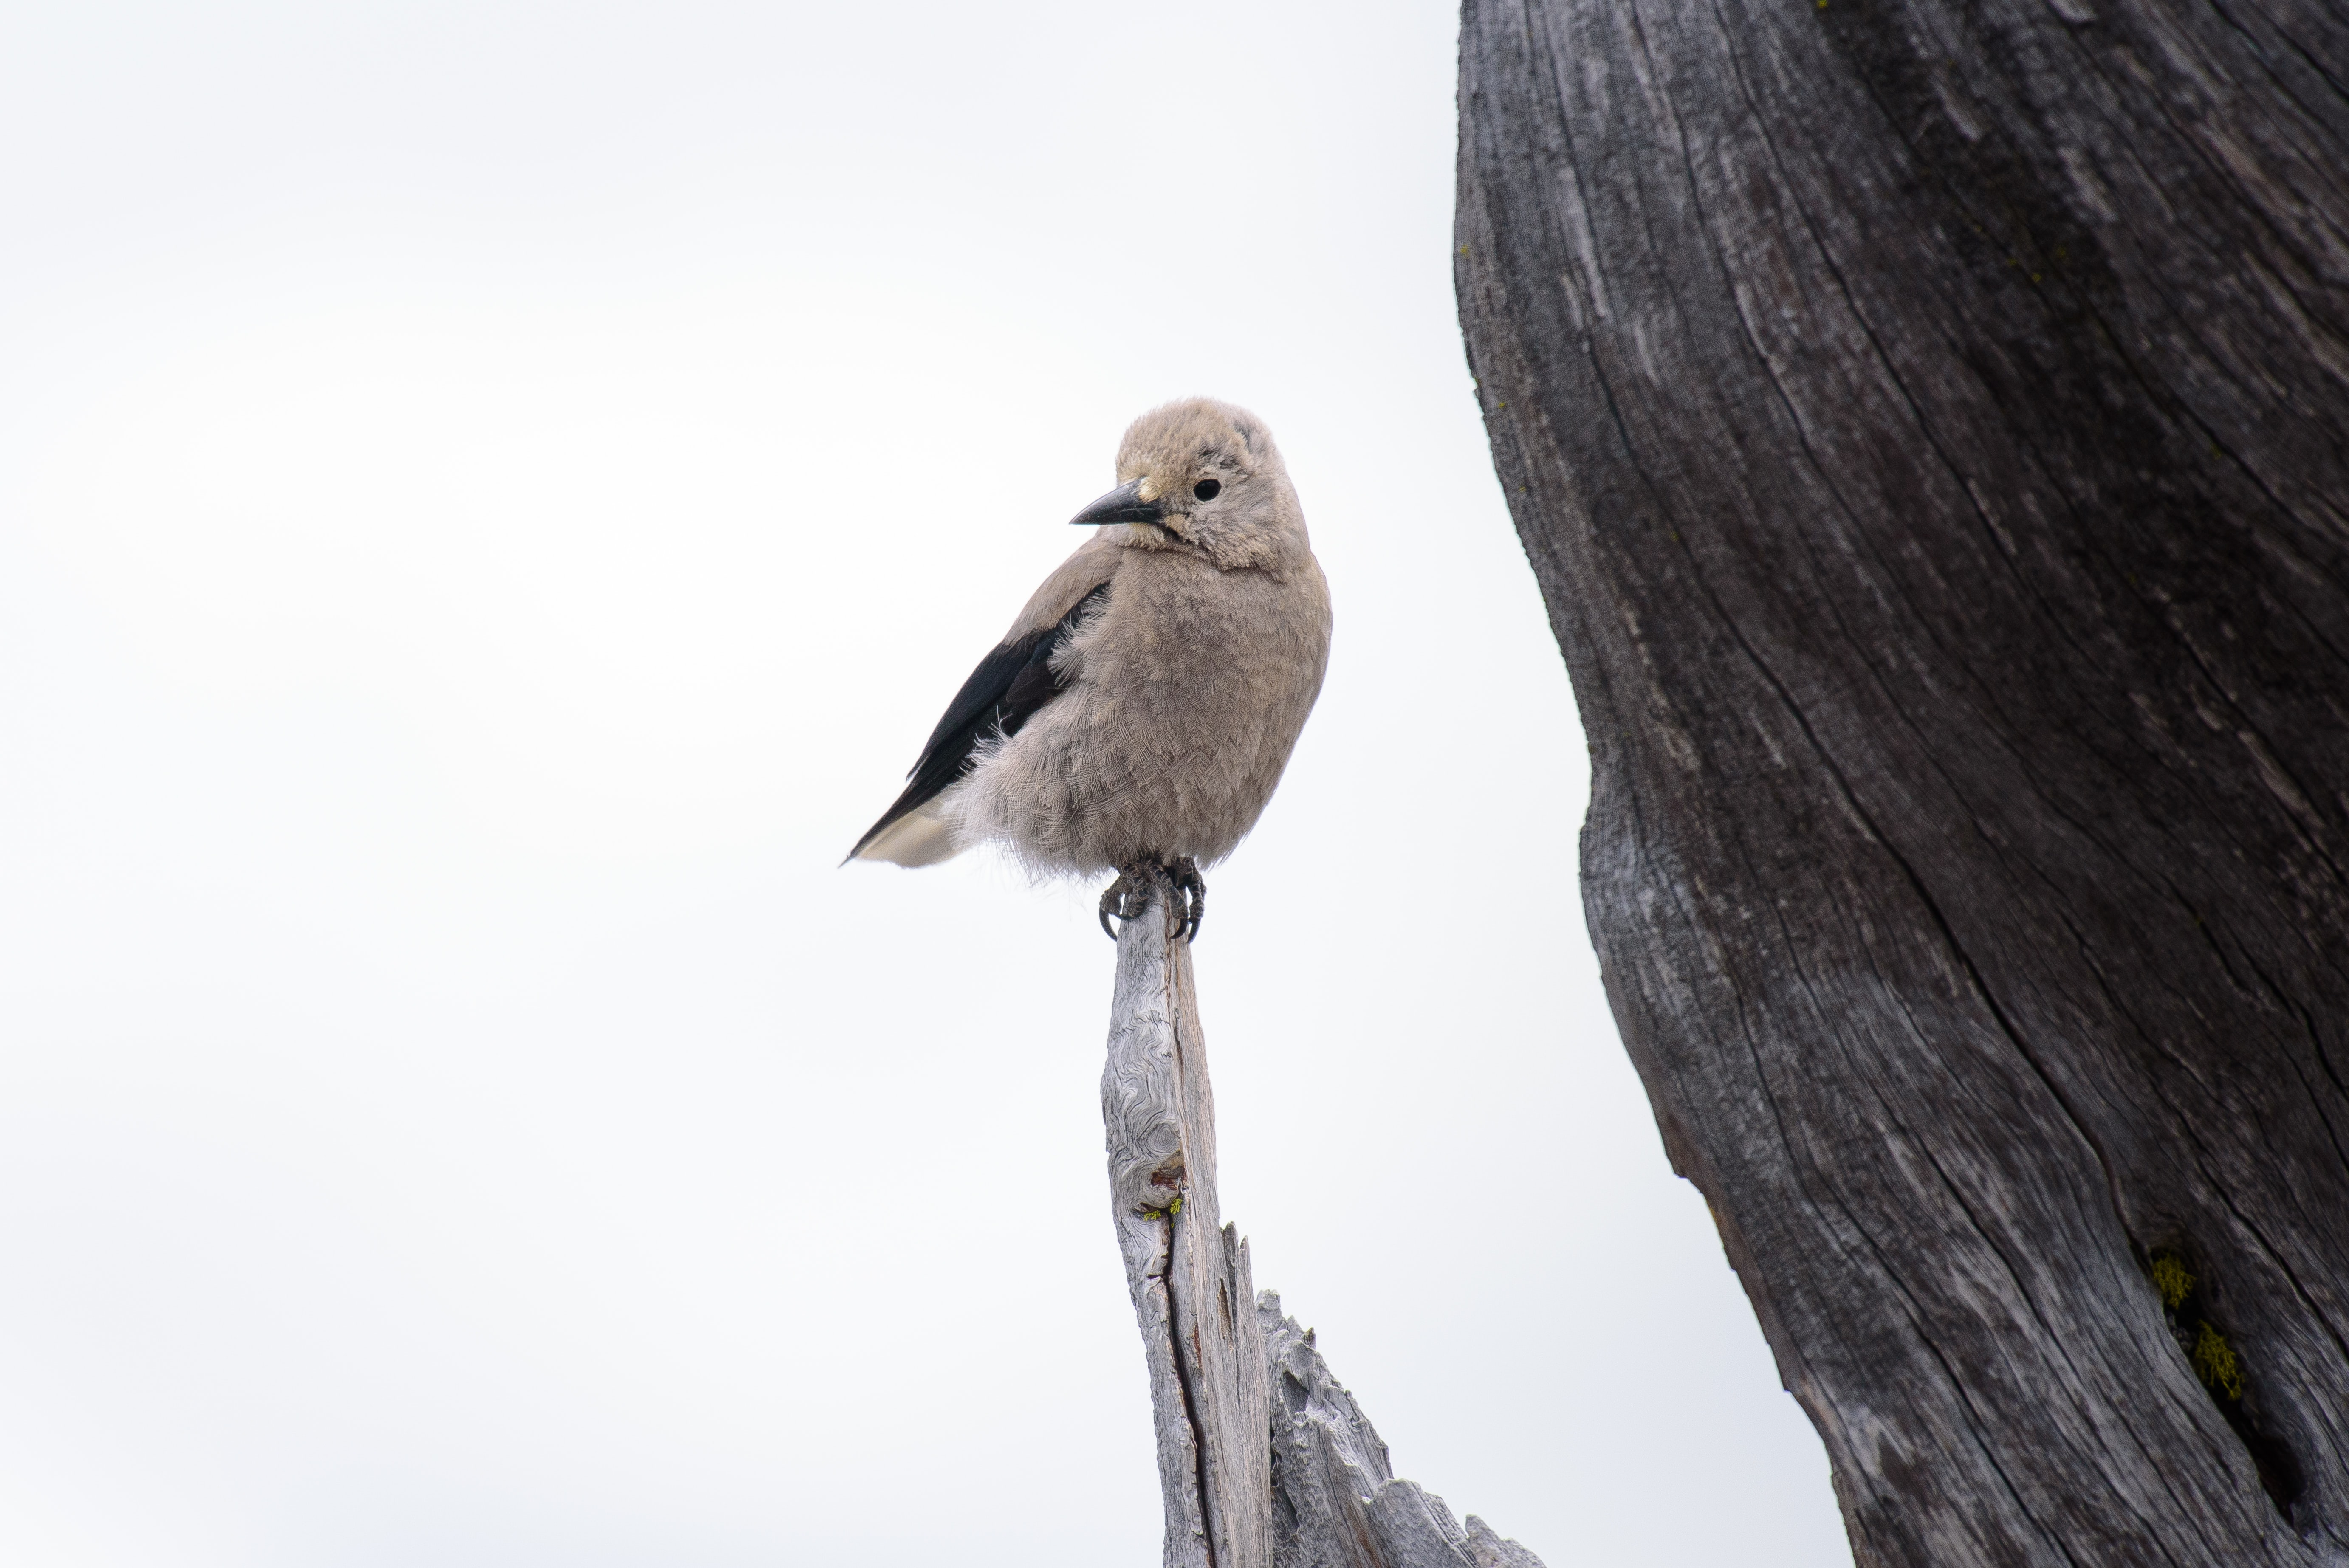 gray bird standing on edge of drift wood